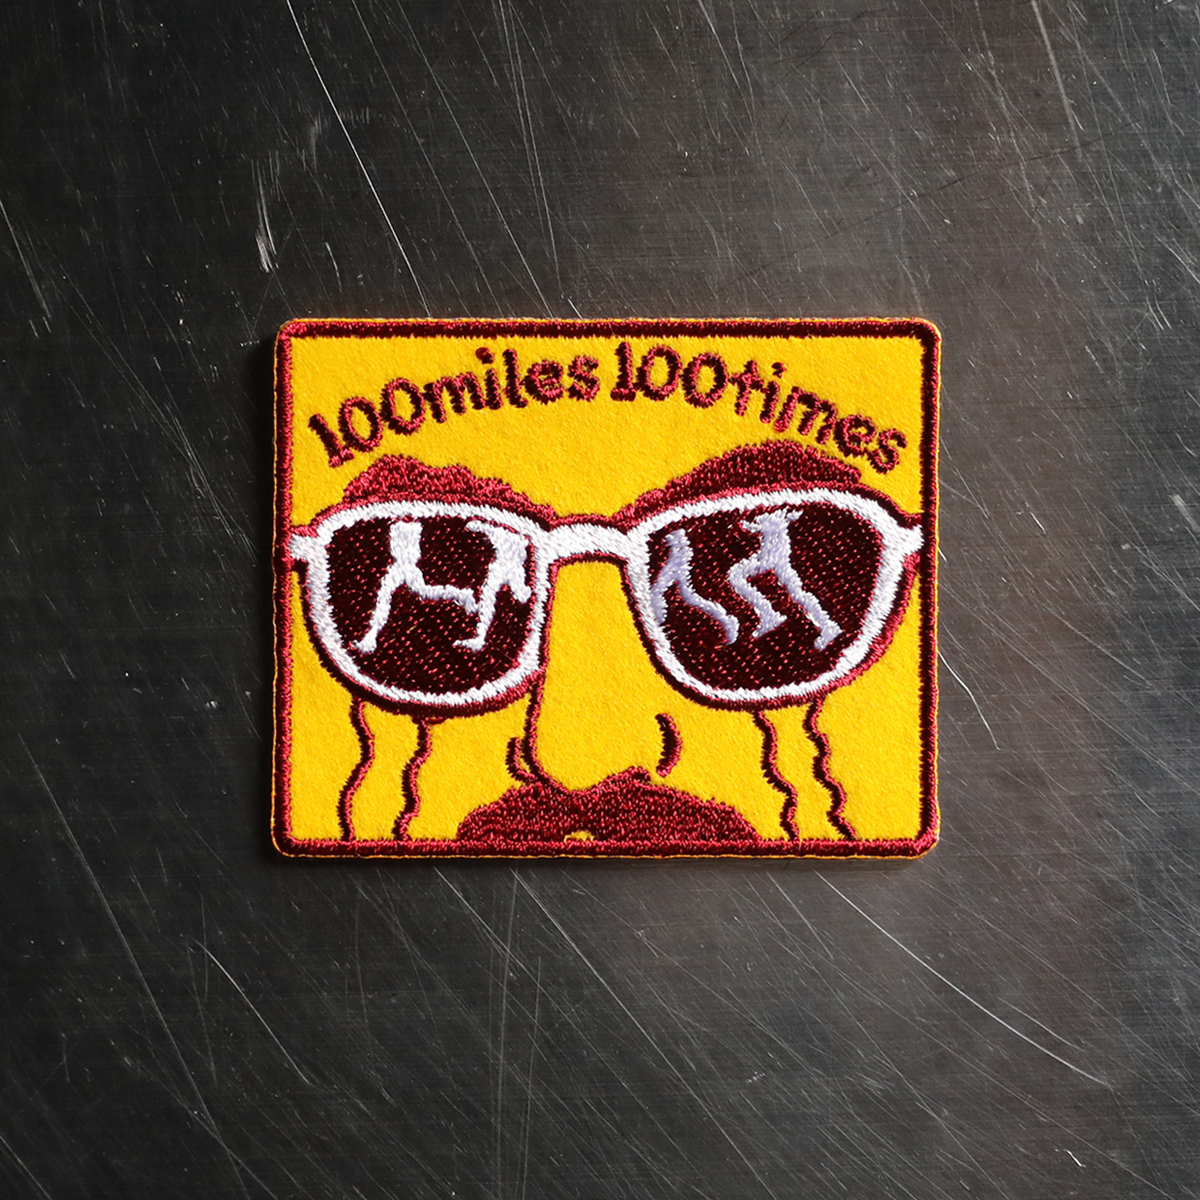 100miles 100times Patch by Jerry (Yellow)